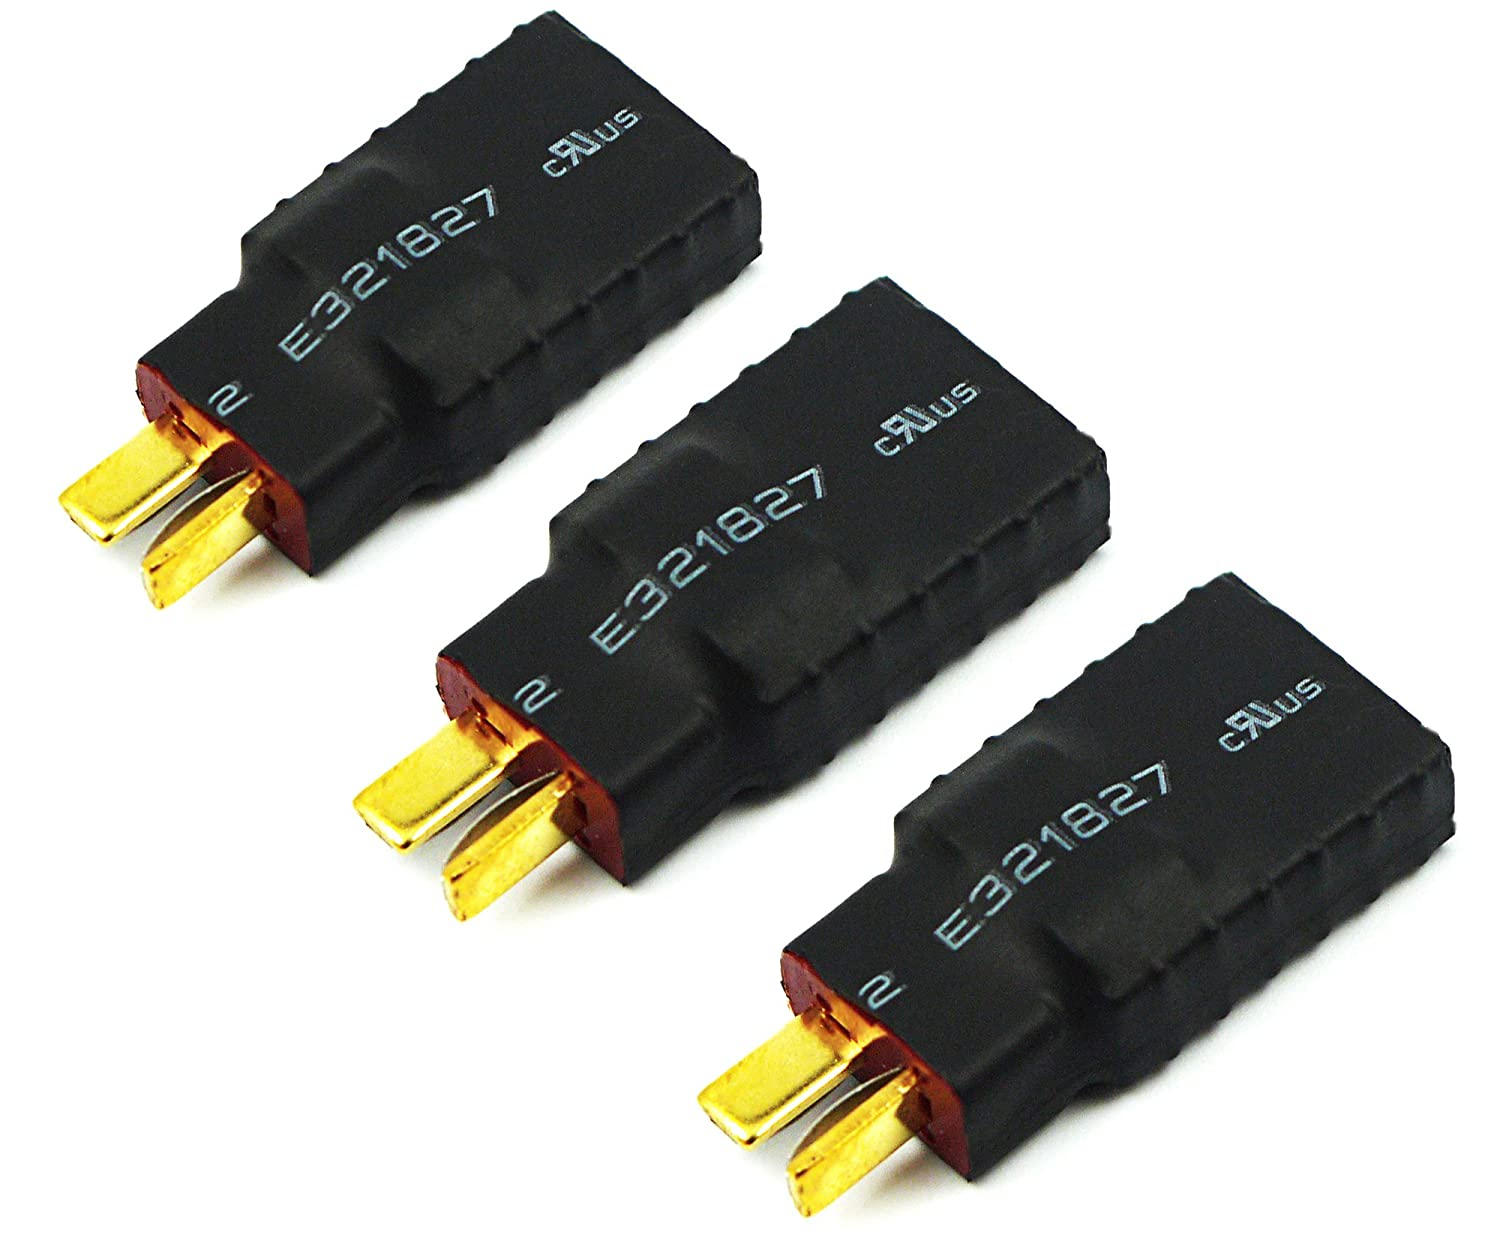 Amazon.com: Readytosky T-Plug Deans Male to Traxxa Female Connector ...